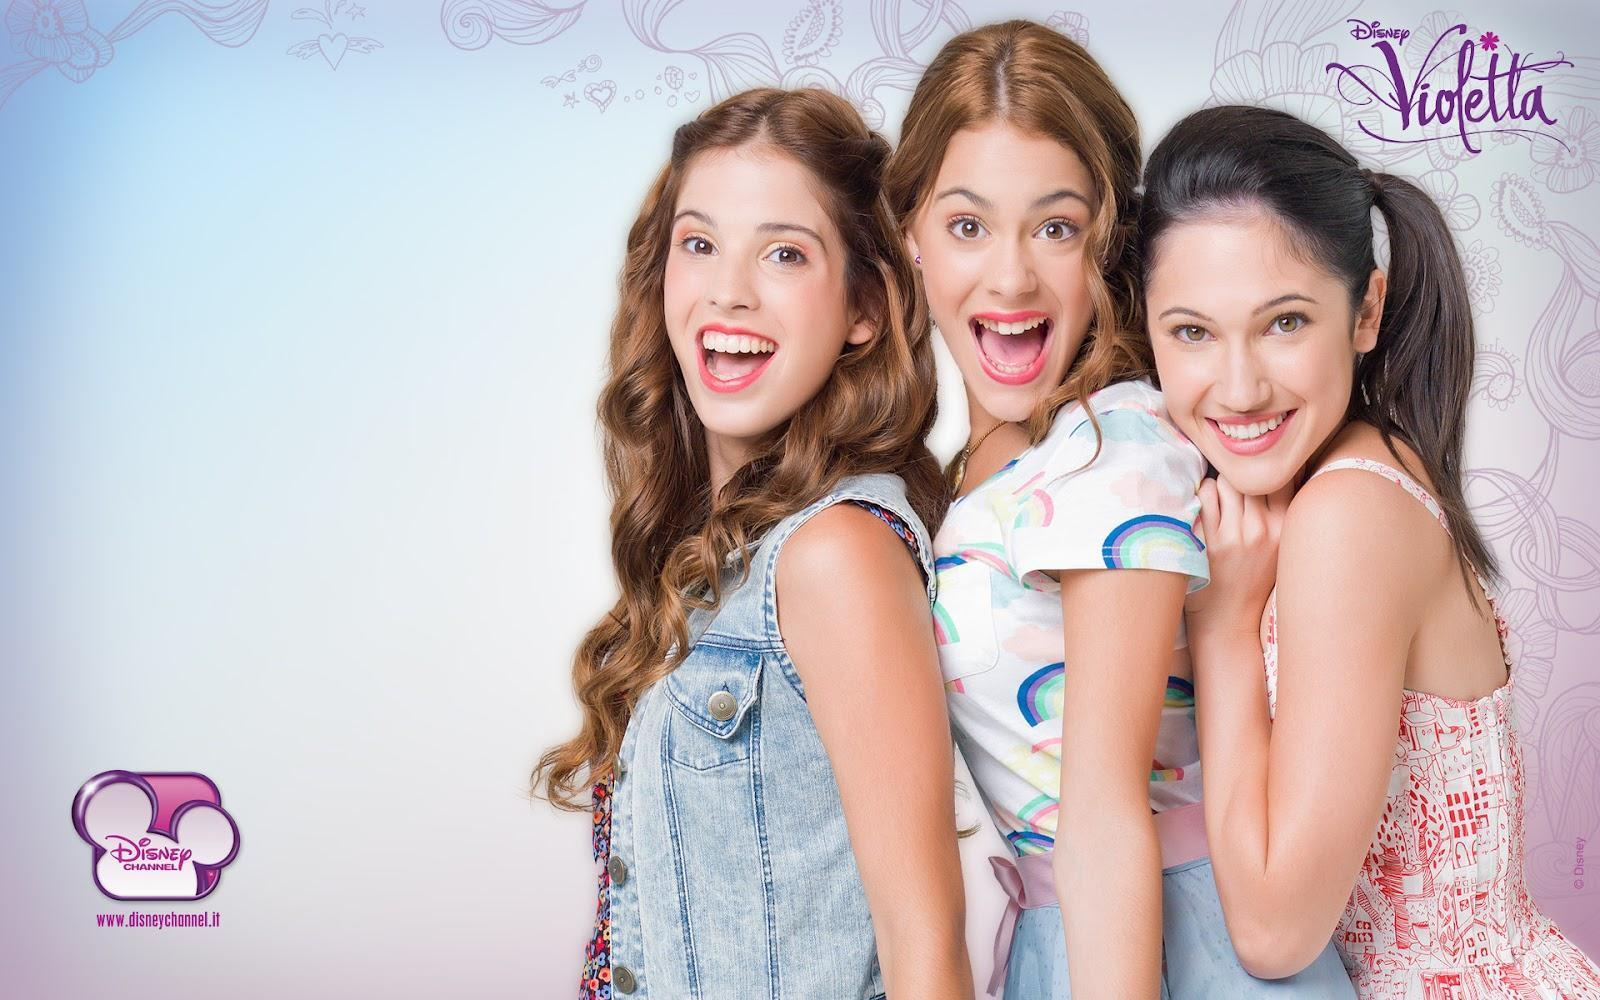 VIOLETTA : ONCE AGAIN